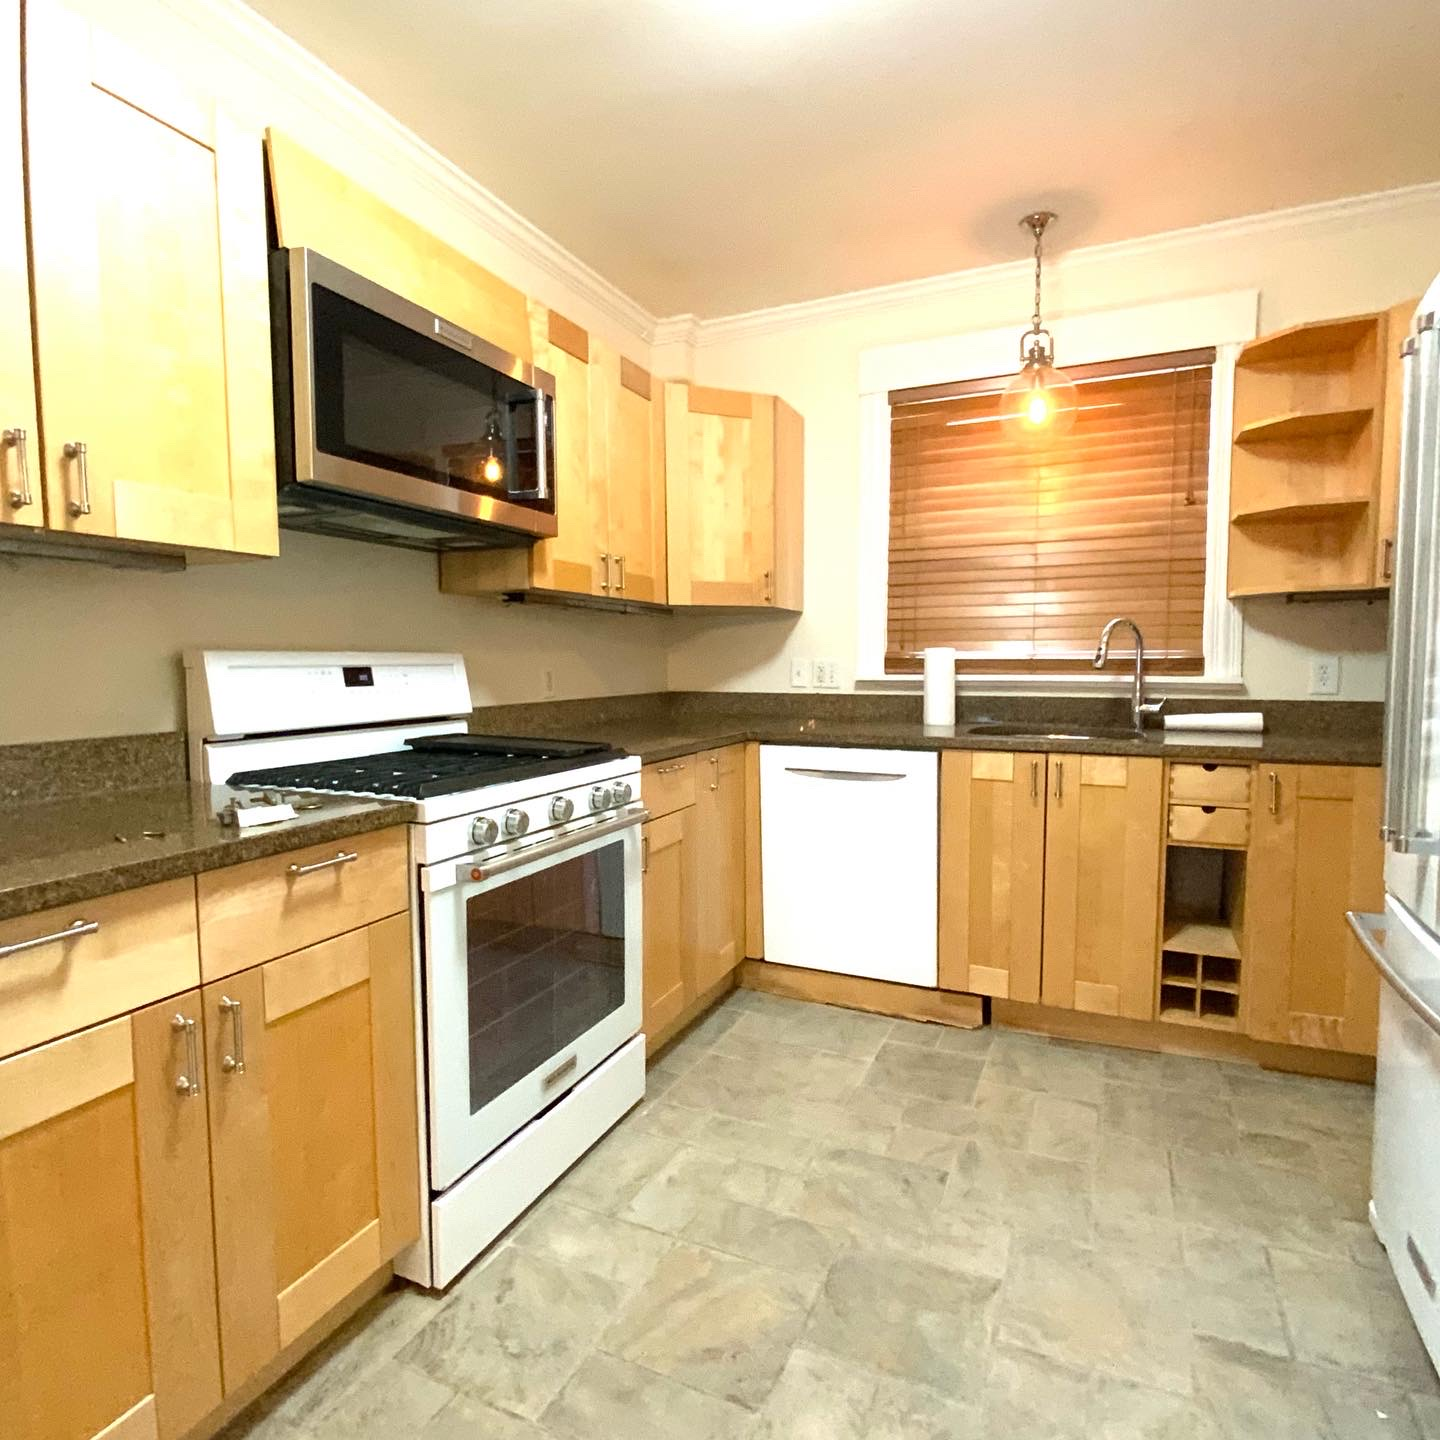 2 Beds, 1 Bath apartment in Cambridge for $2,800